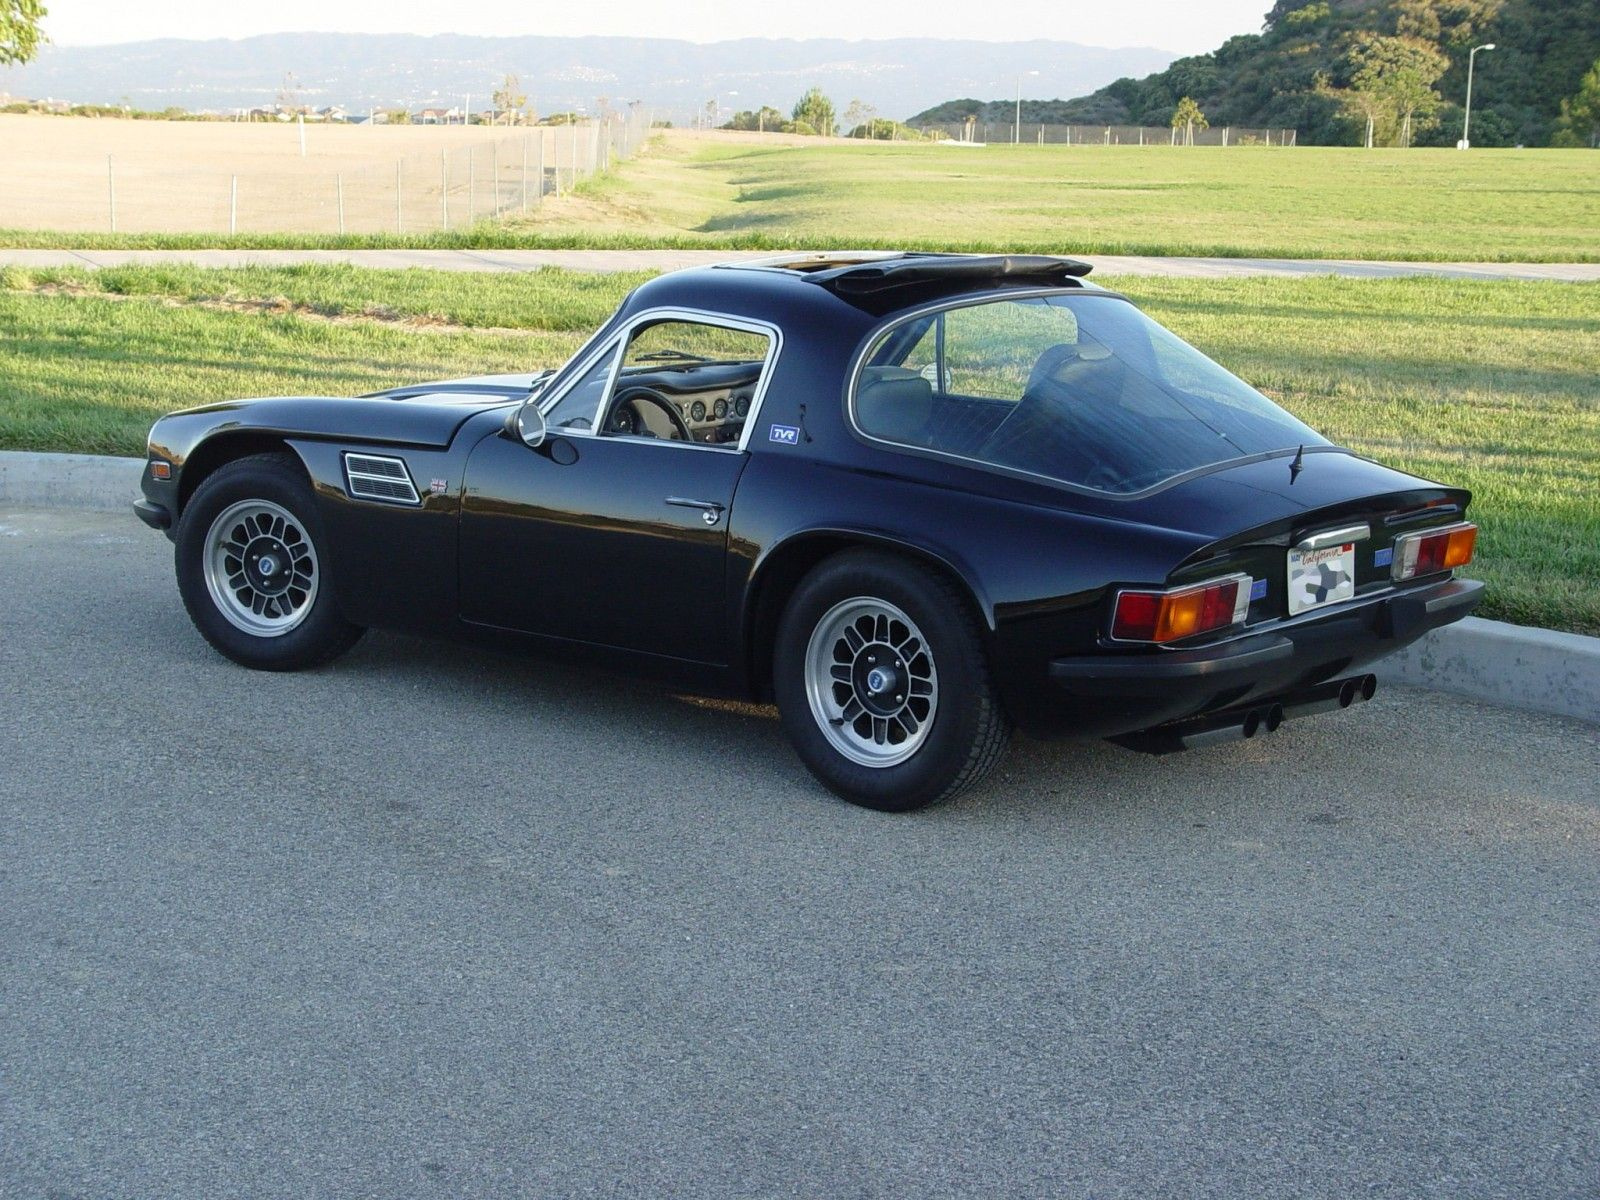 9c410129fe5b786c4afea00152c5781a Fascinating Tvr Griffith for Sale In Uk Cars Trend